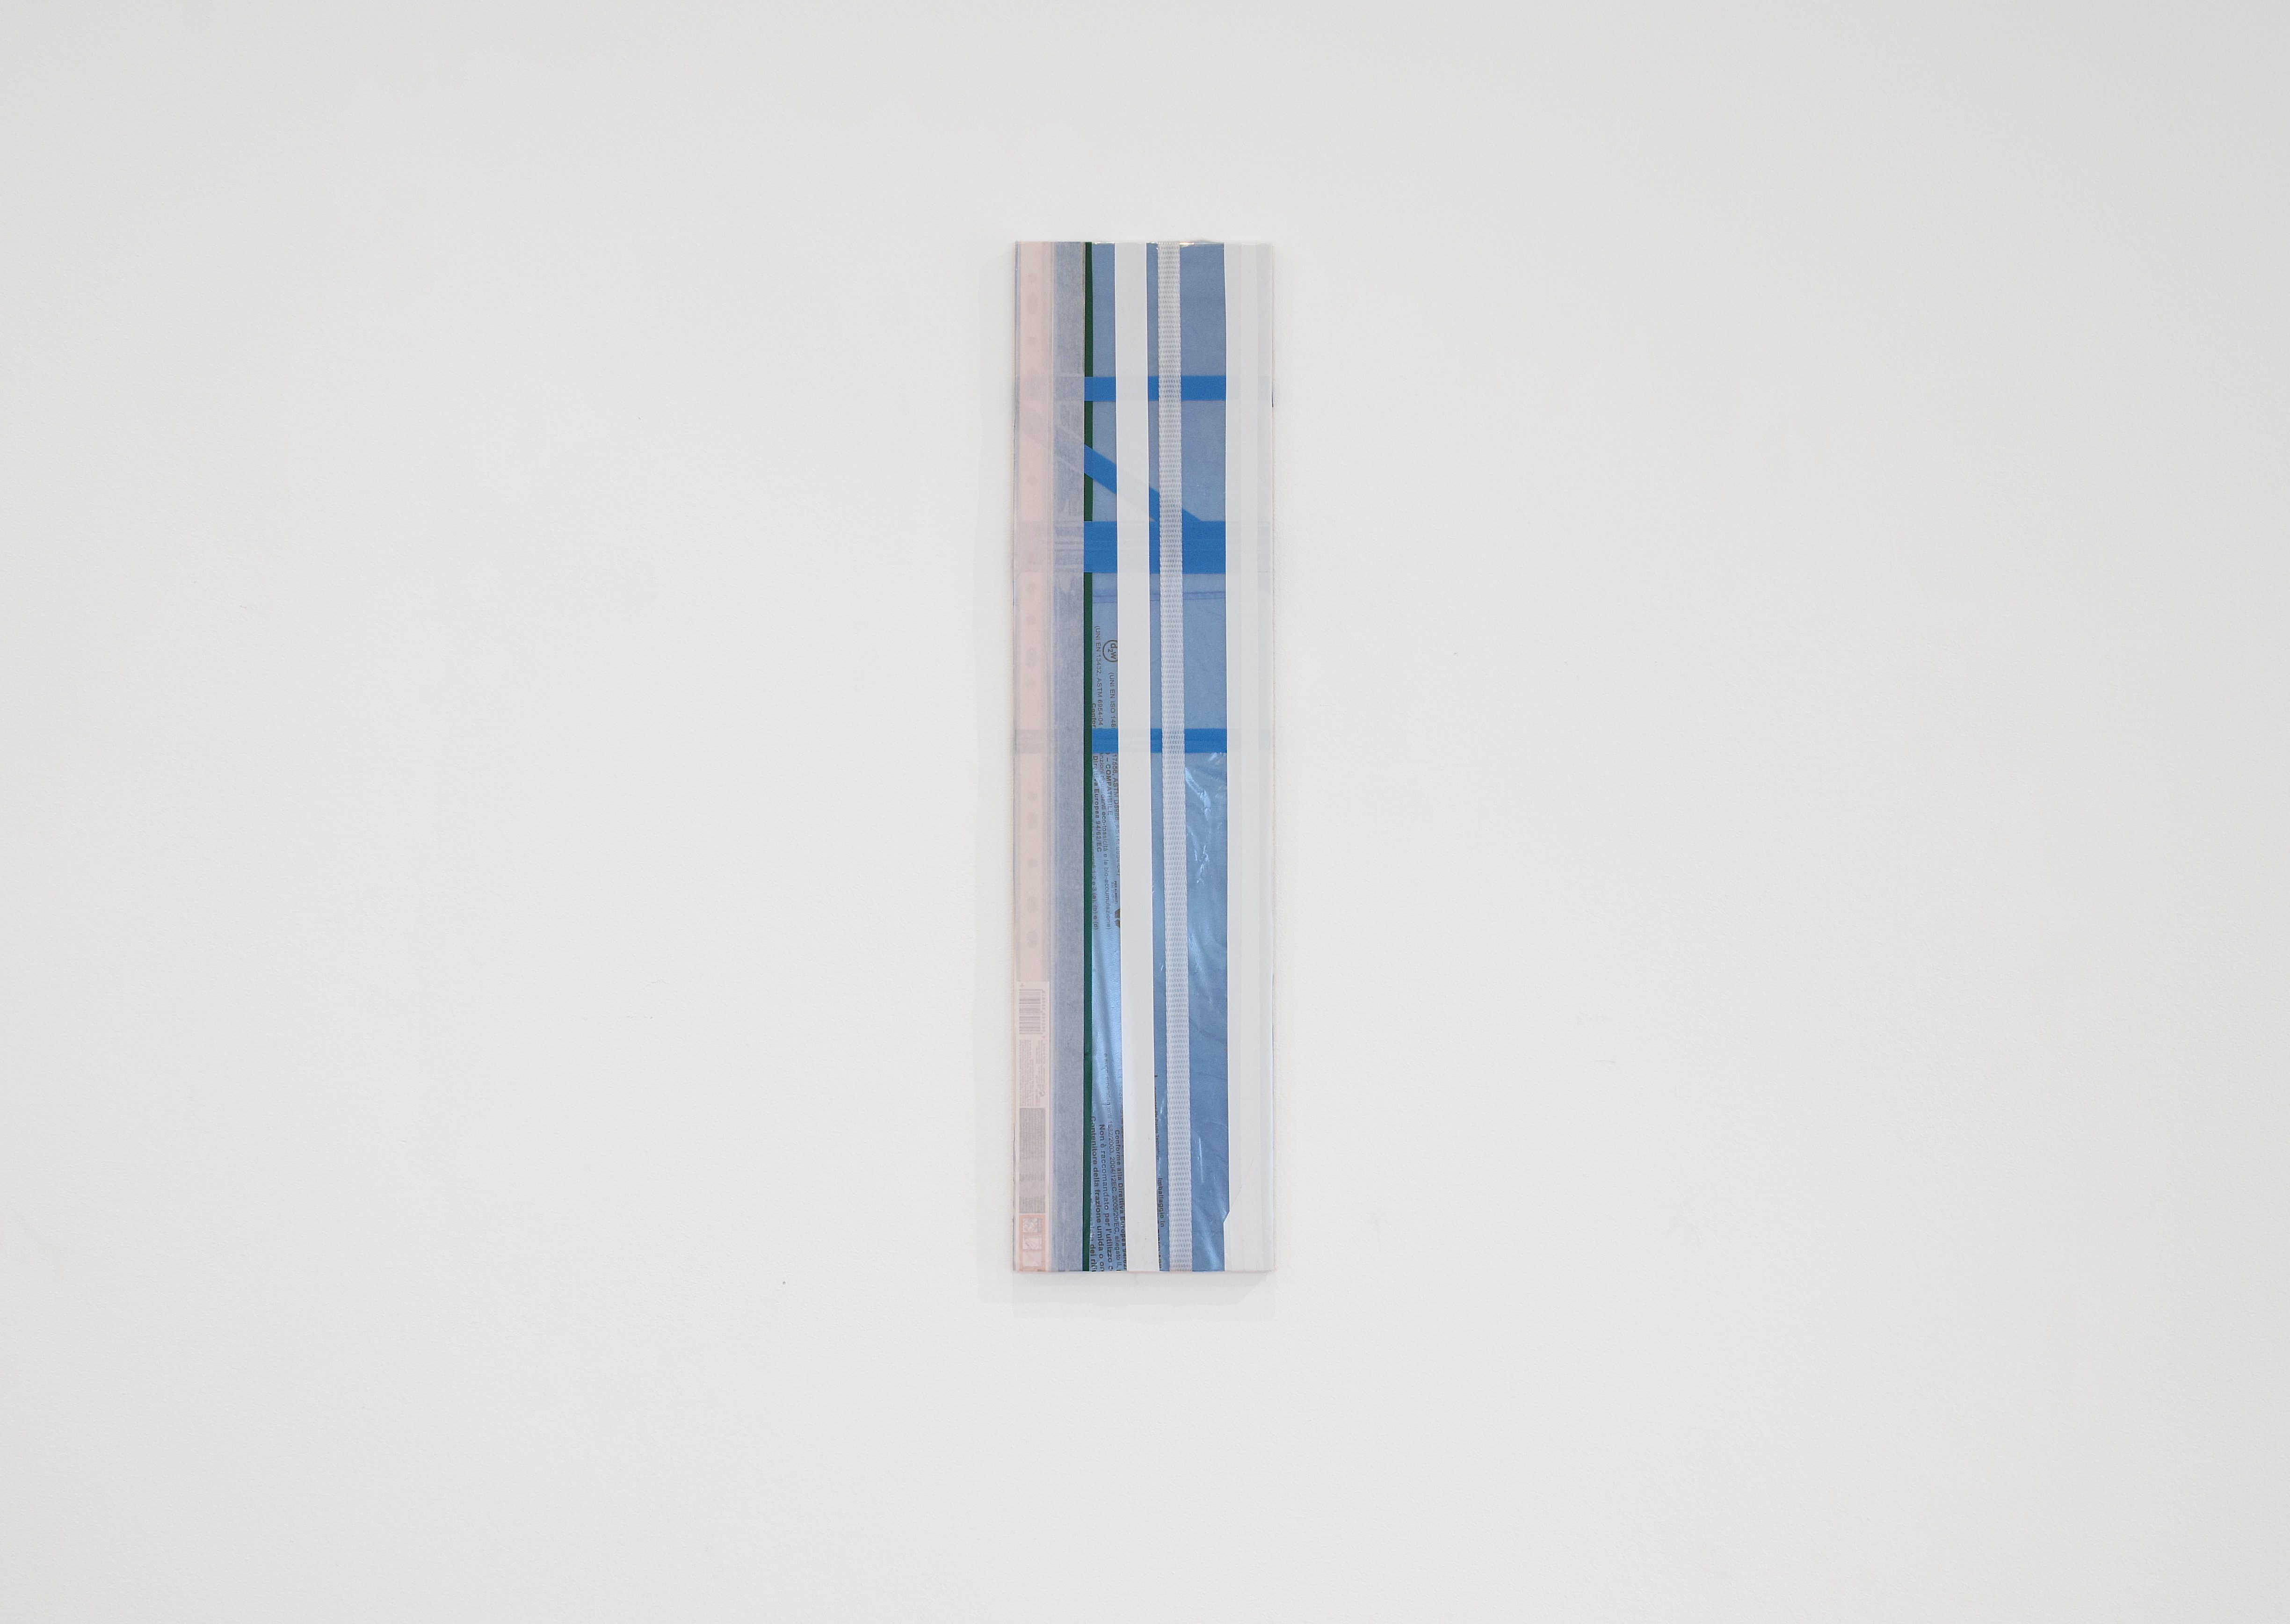 Diversions Series, 2018, Packaging strap, tape and plastics on plywood, 15×60cm